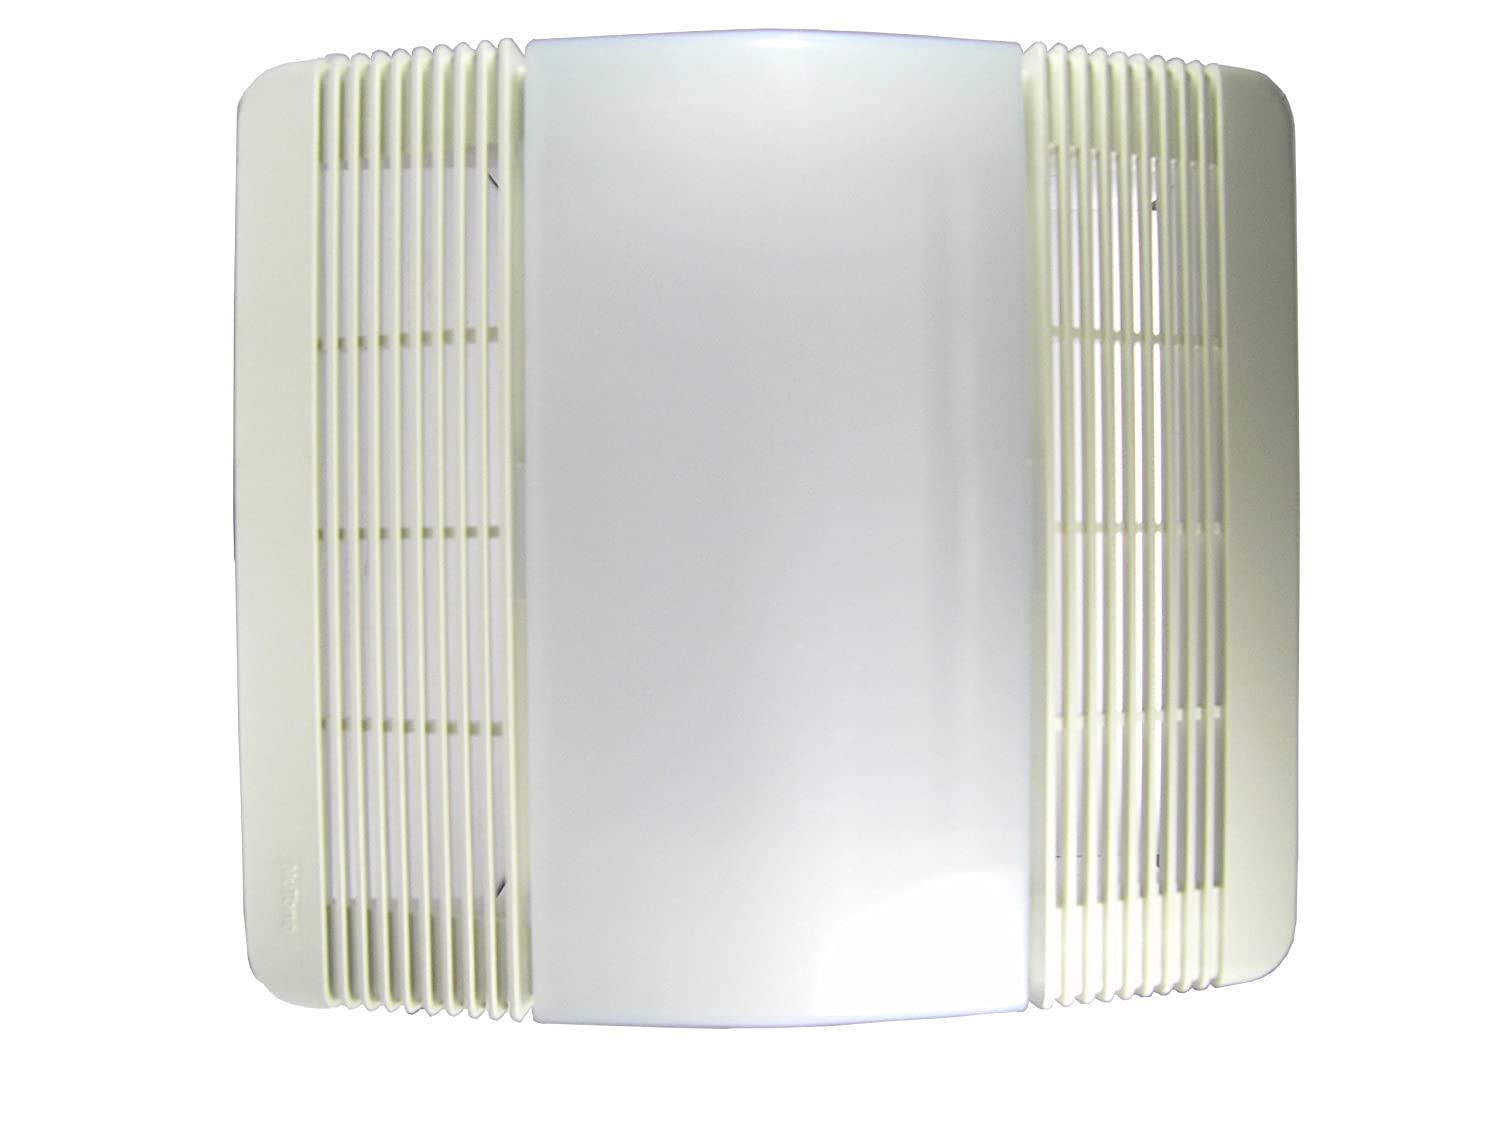 NuTone Heater And Ventilation Fan Lens With Grille Assembly - Replace bathroom exhaust fan with light